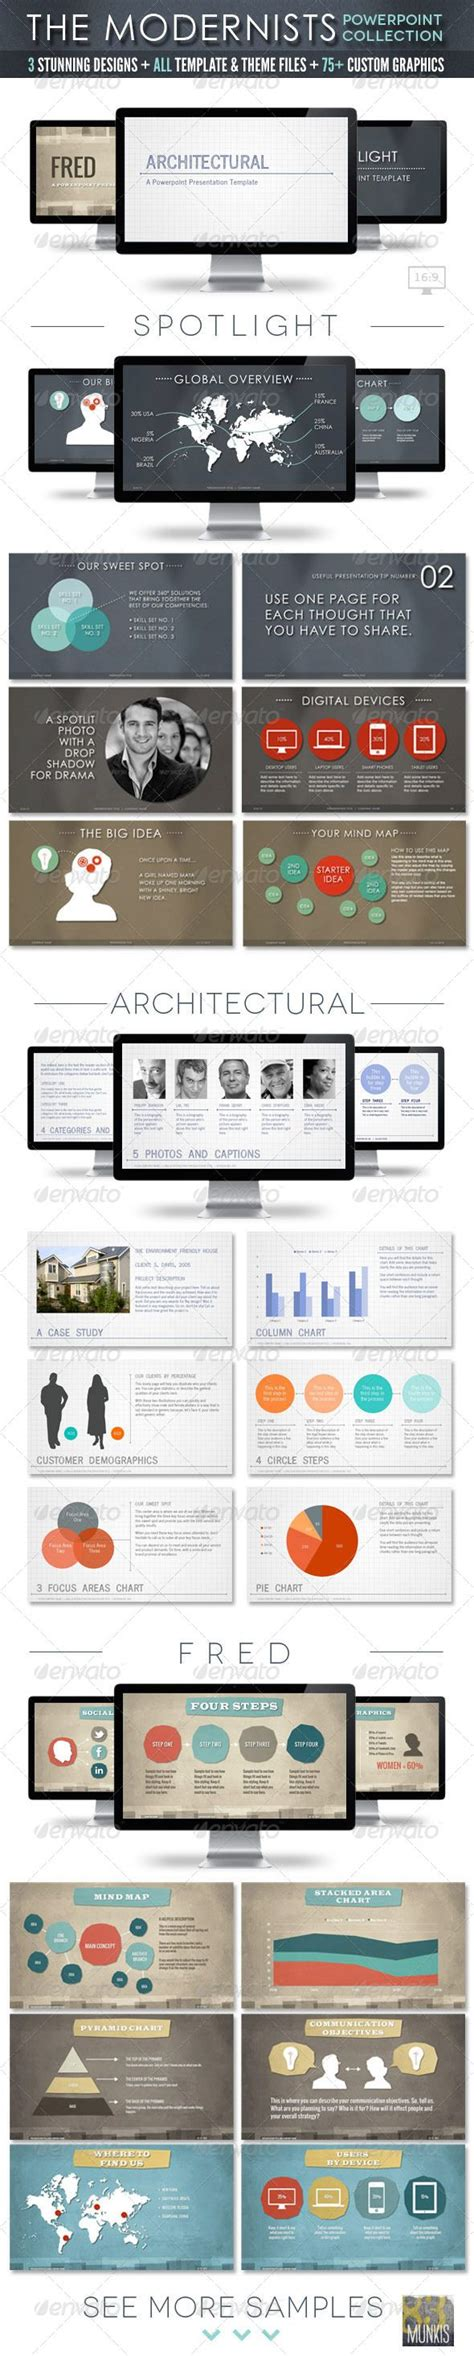 themes for multimedia presentation the modernists collection powerpoint templates